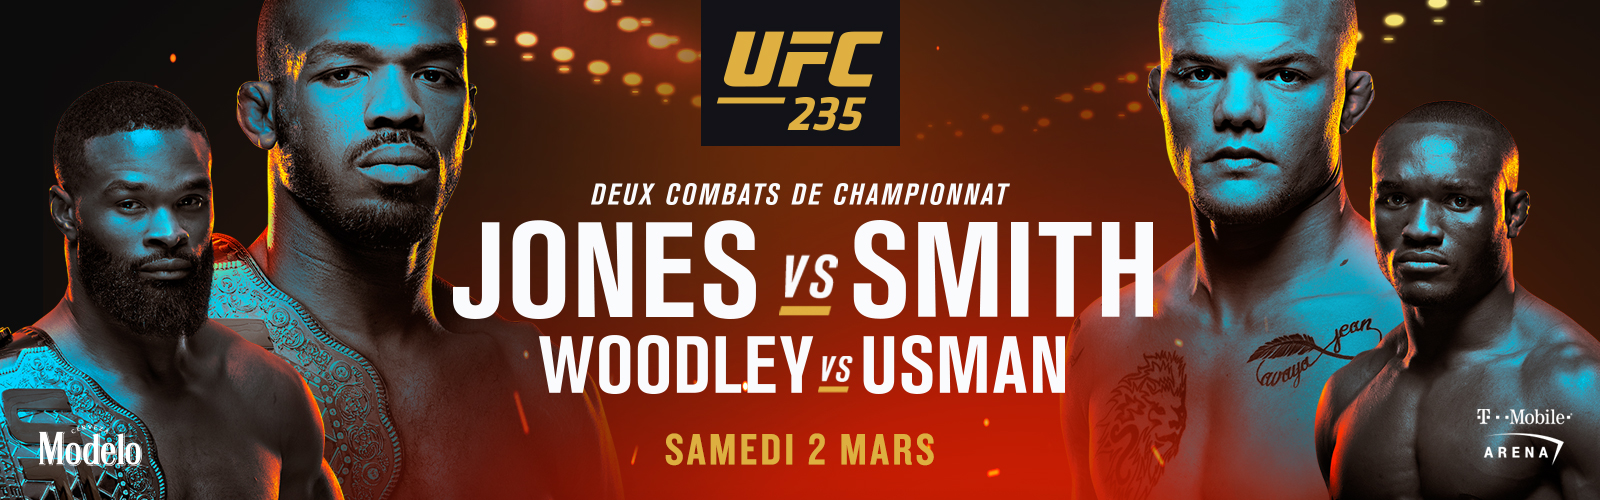 UFC 235 - Jones vs Smith - Samedi 2 mars